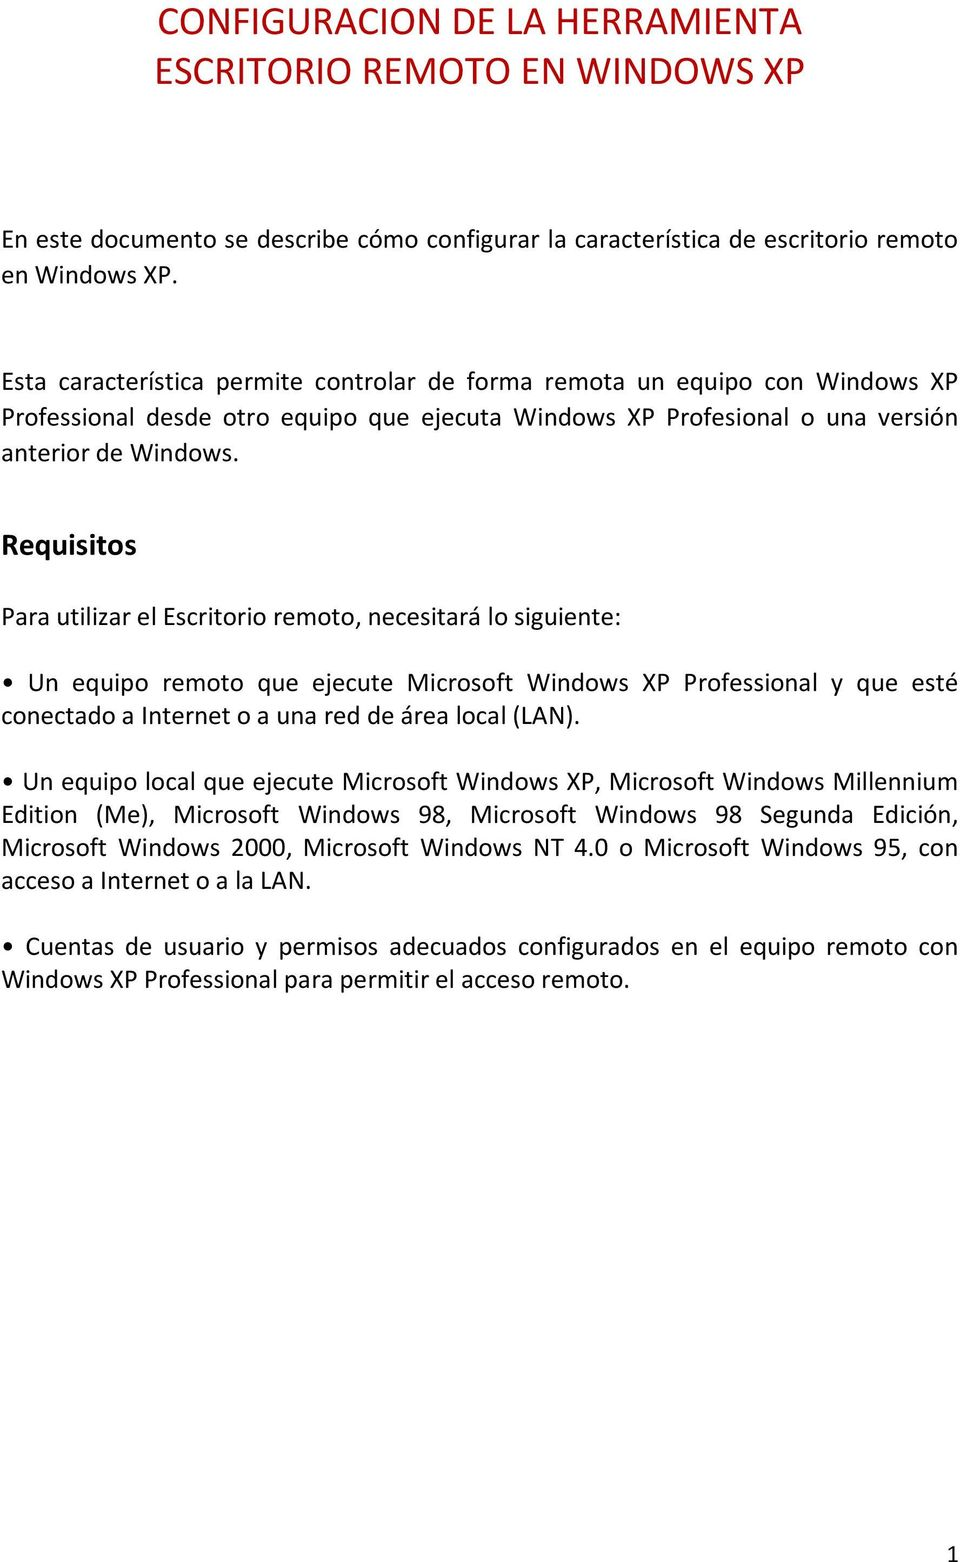 Requisitos Para utilizar el Escritorio remoto, necesitará lo siguiente: Un equipo remoto que ejecute Microsoft Windows XP Professional y que esté conectado a Internet o a una red de área local (LAN).